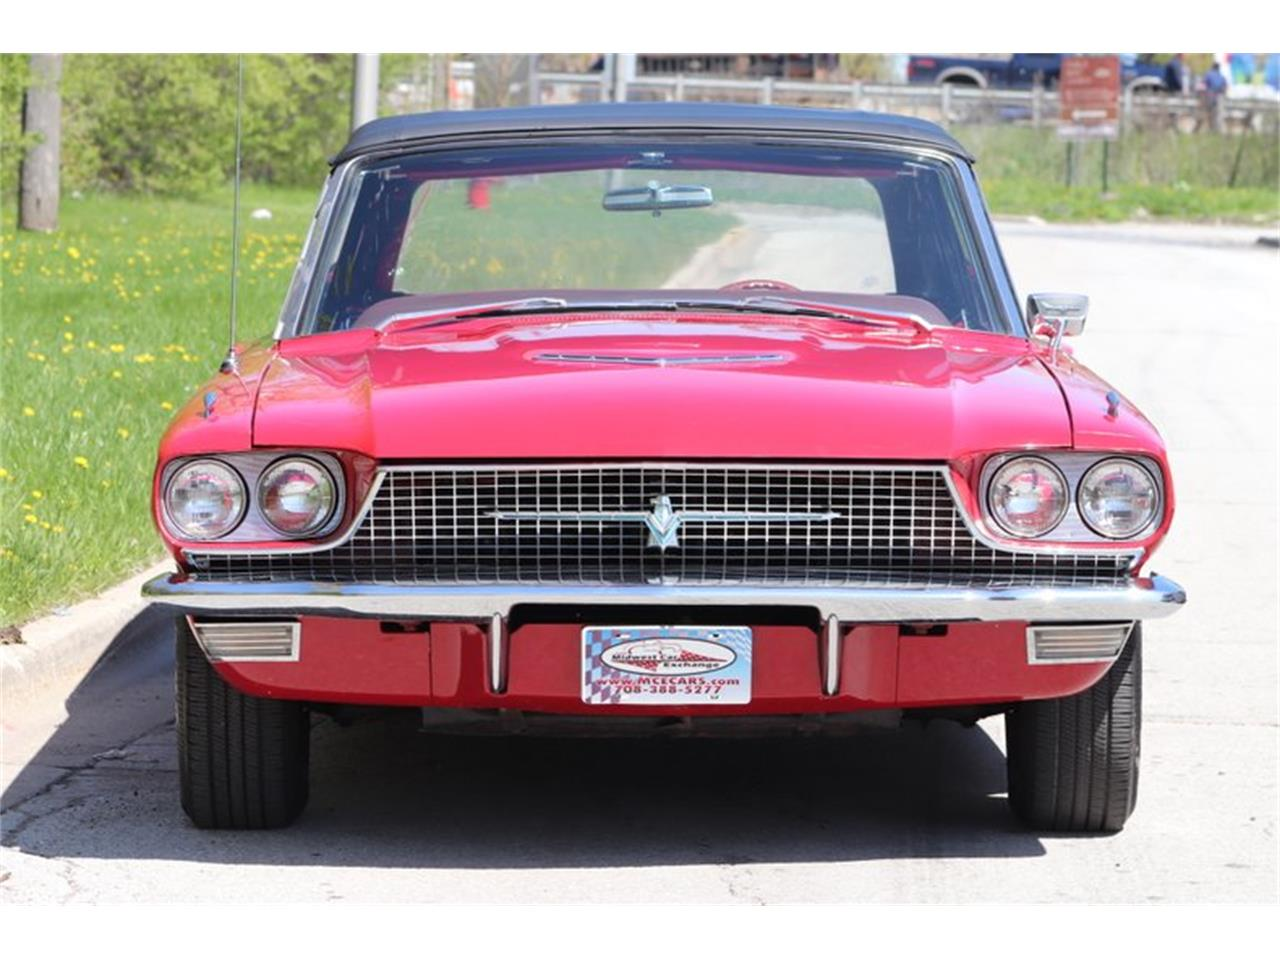 Large Picture of 1966 Ford Thunderbird located in Illinois - $29,900.00 - Q0AO